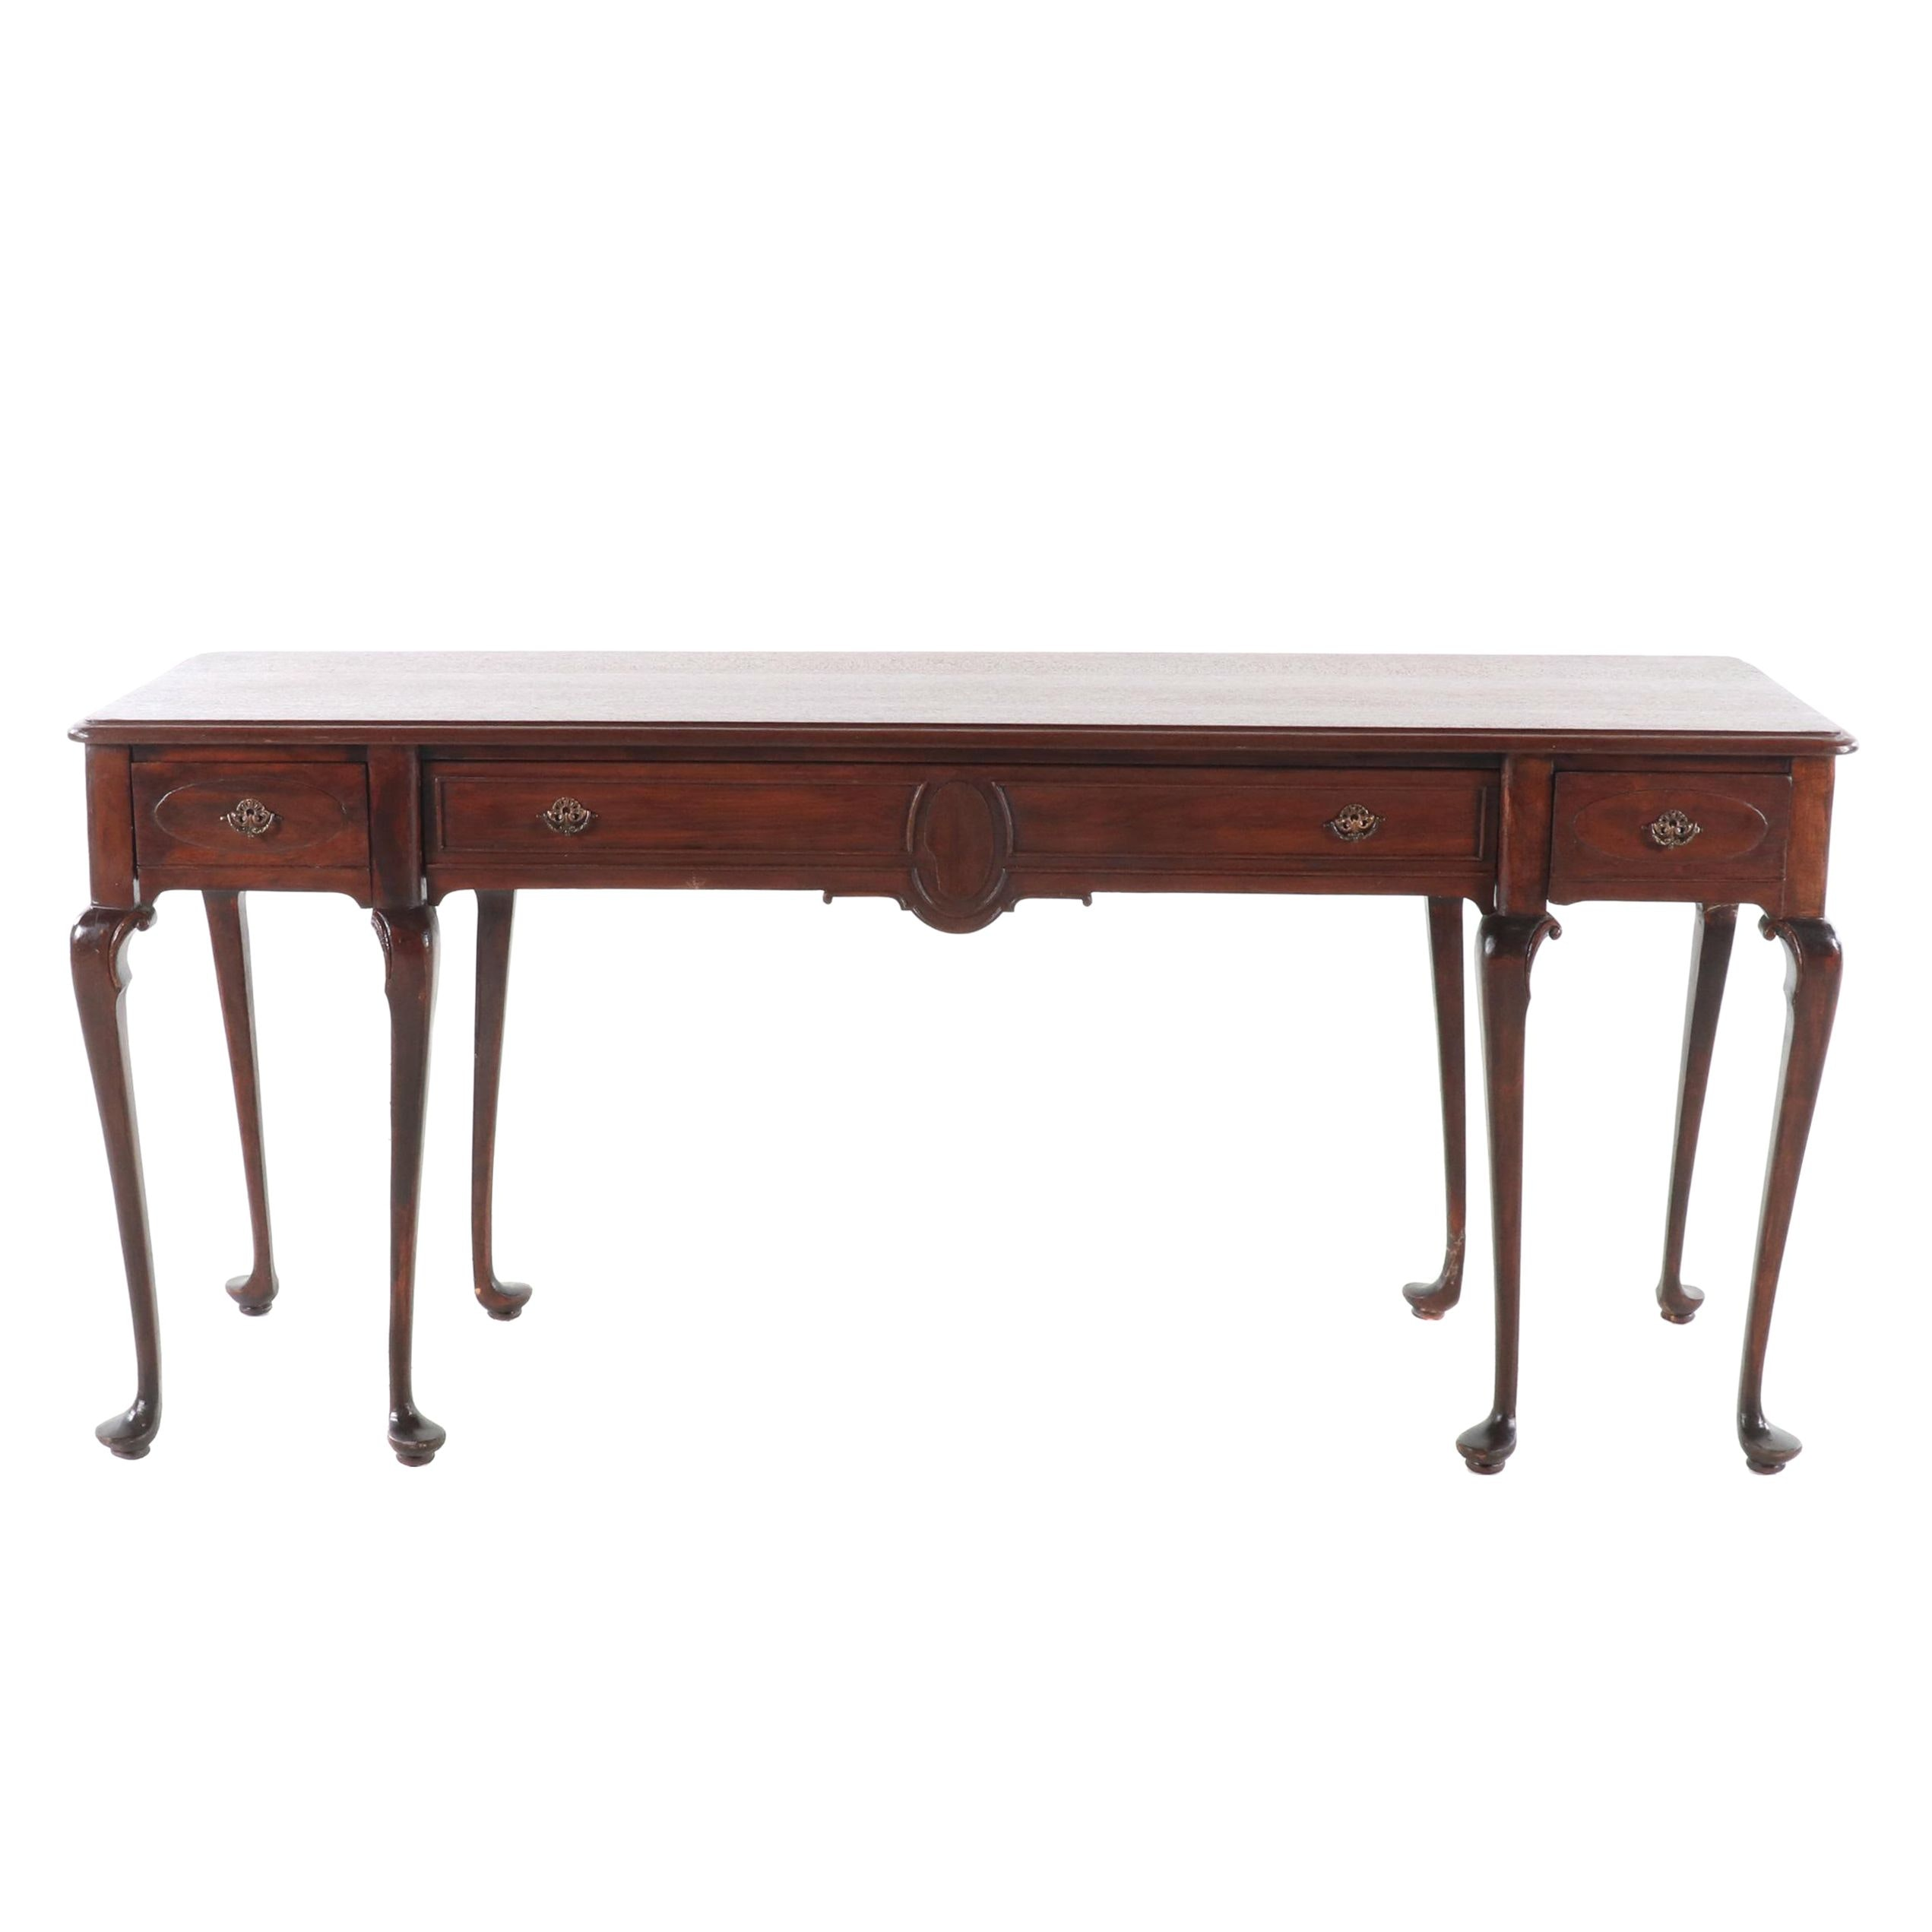 Queen Anne Style Walnut Sofa Table, First Half of the 20th Century